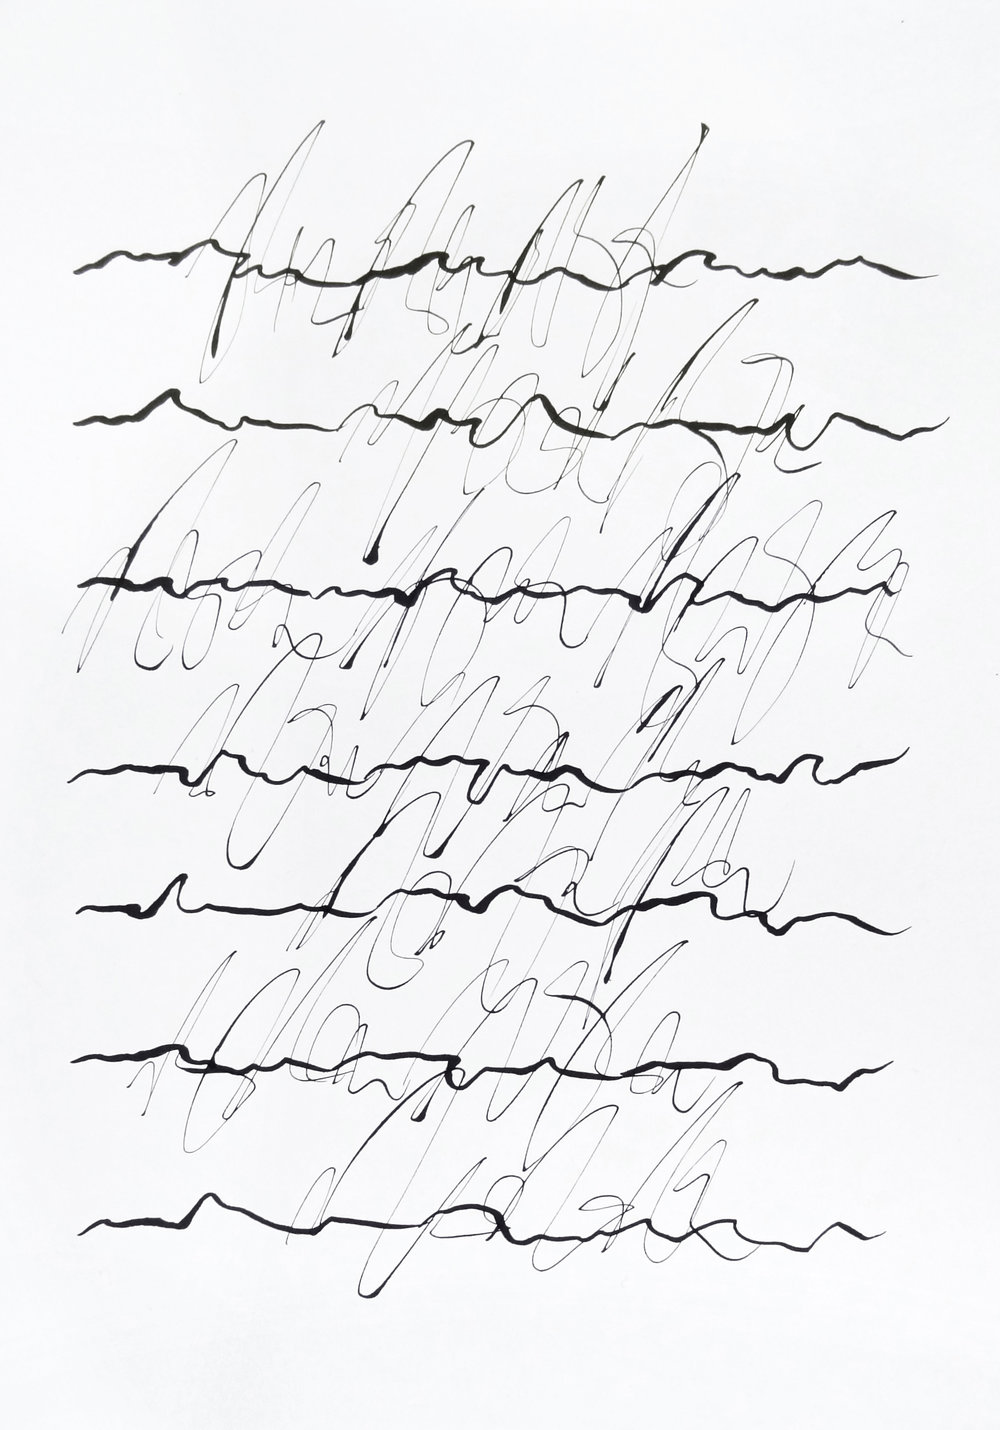 rhythm and flow studies, 2019 calligraphy ink on paper 42,0 x 29,7 cm (1-19)